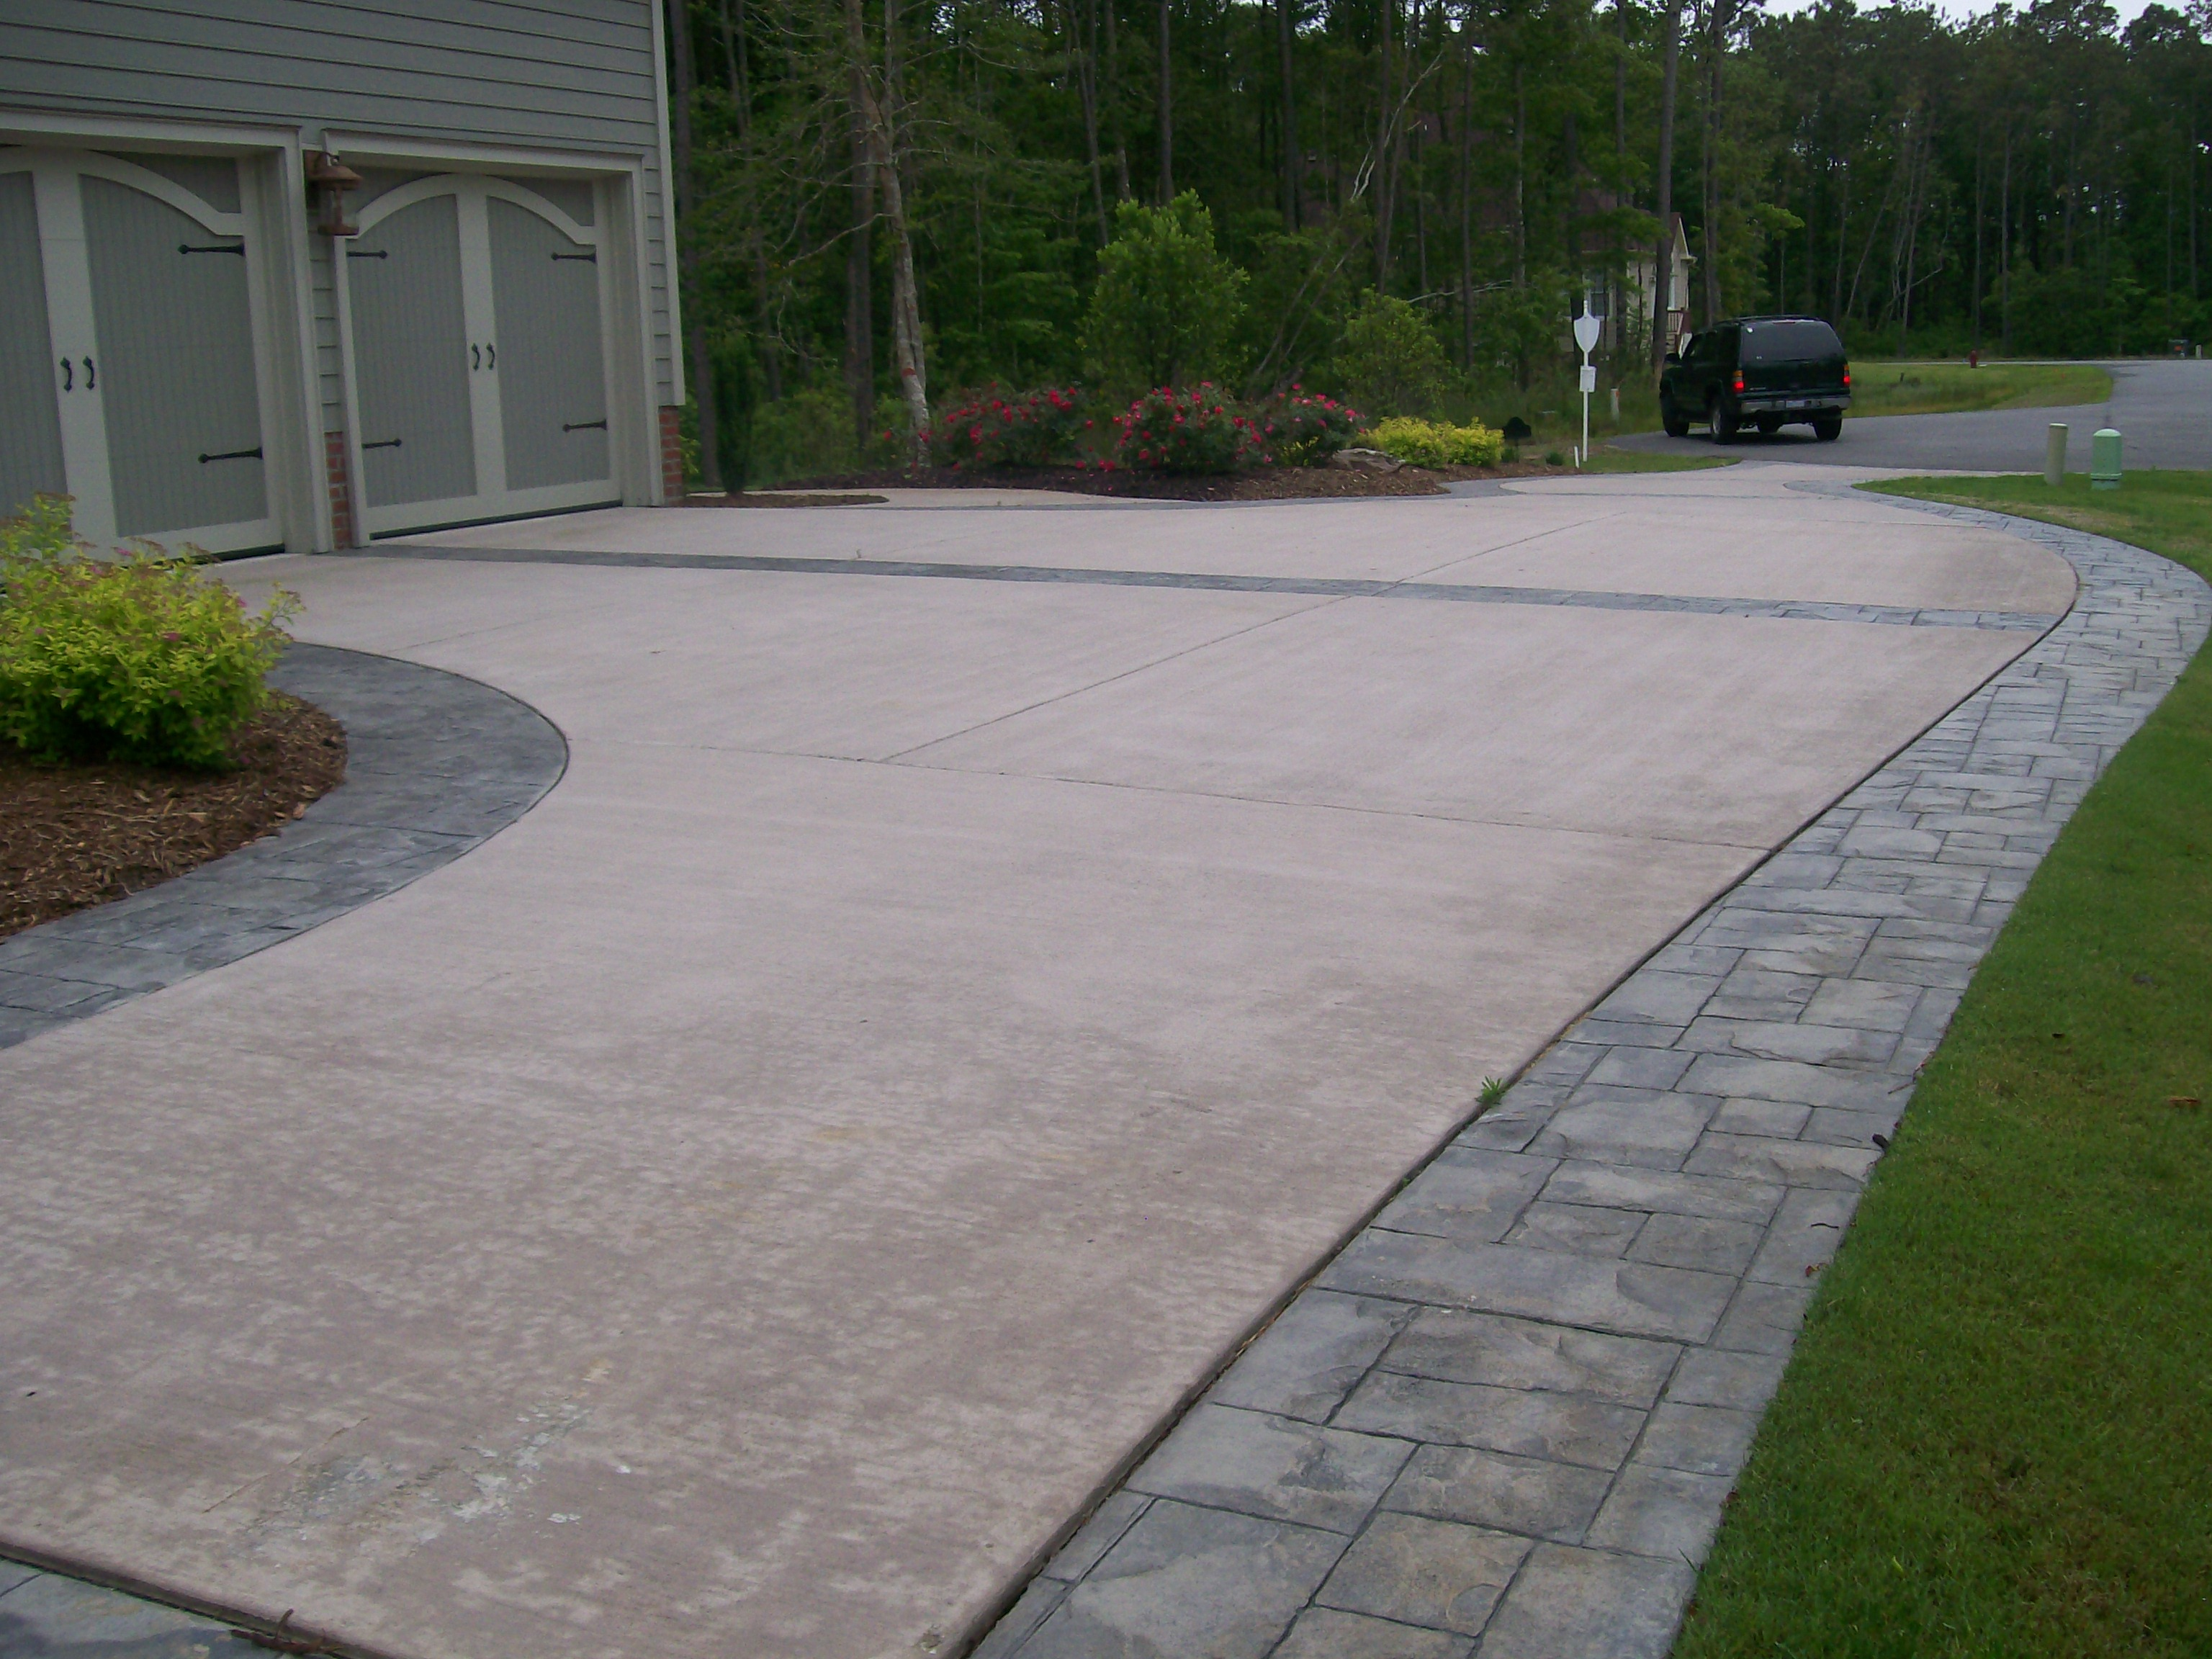 Concrete Stamped Border Driveway With Broom Finish Interior